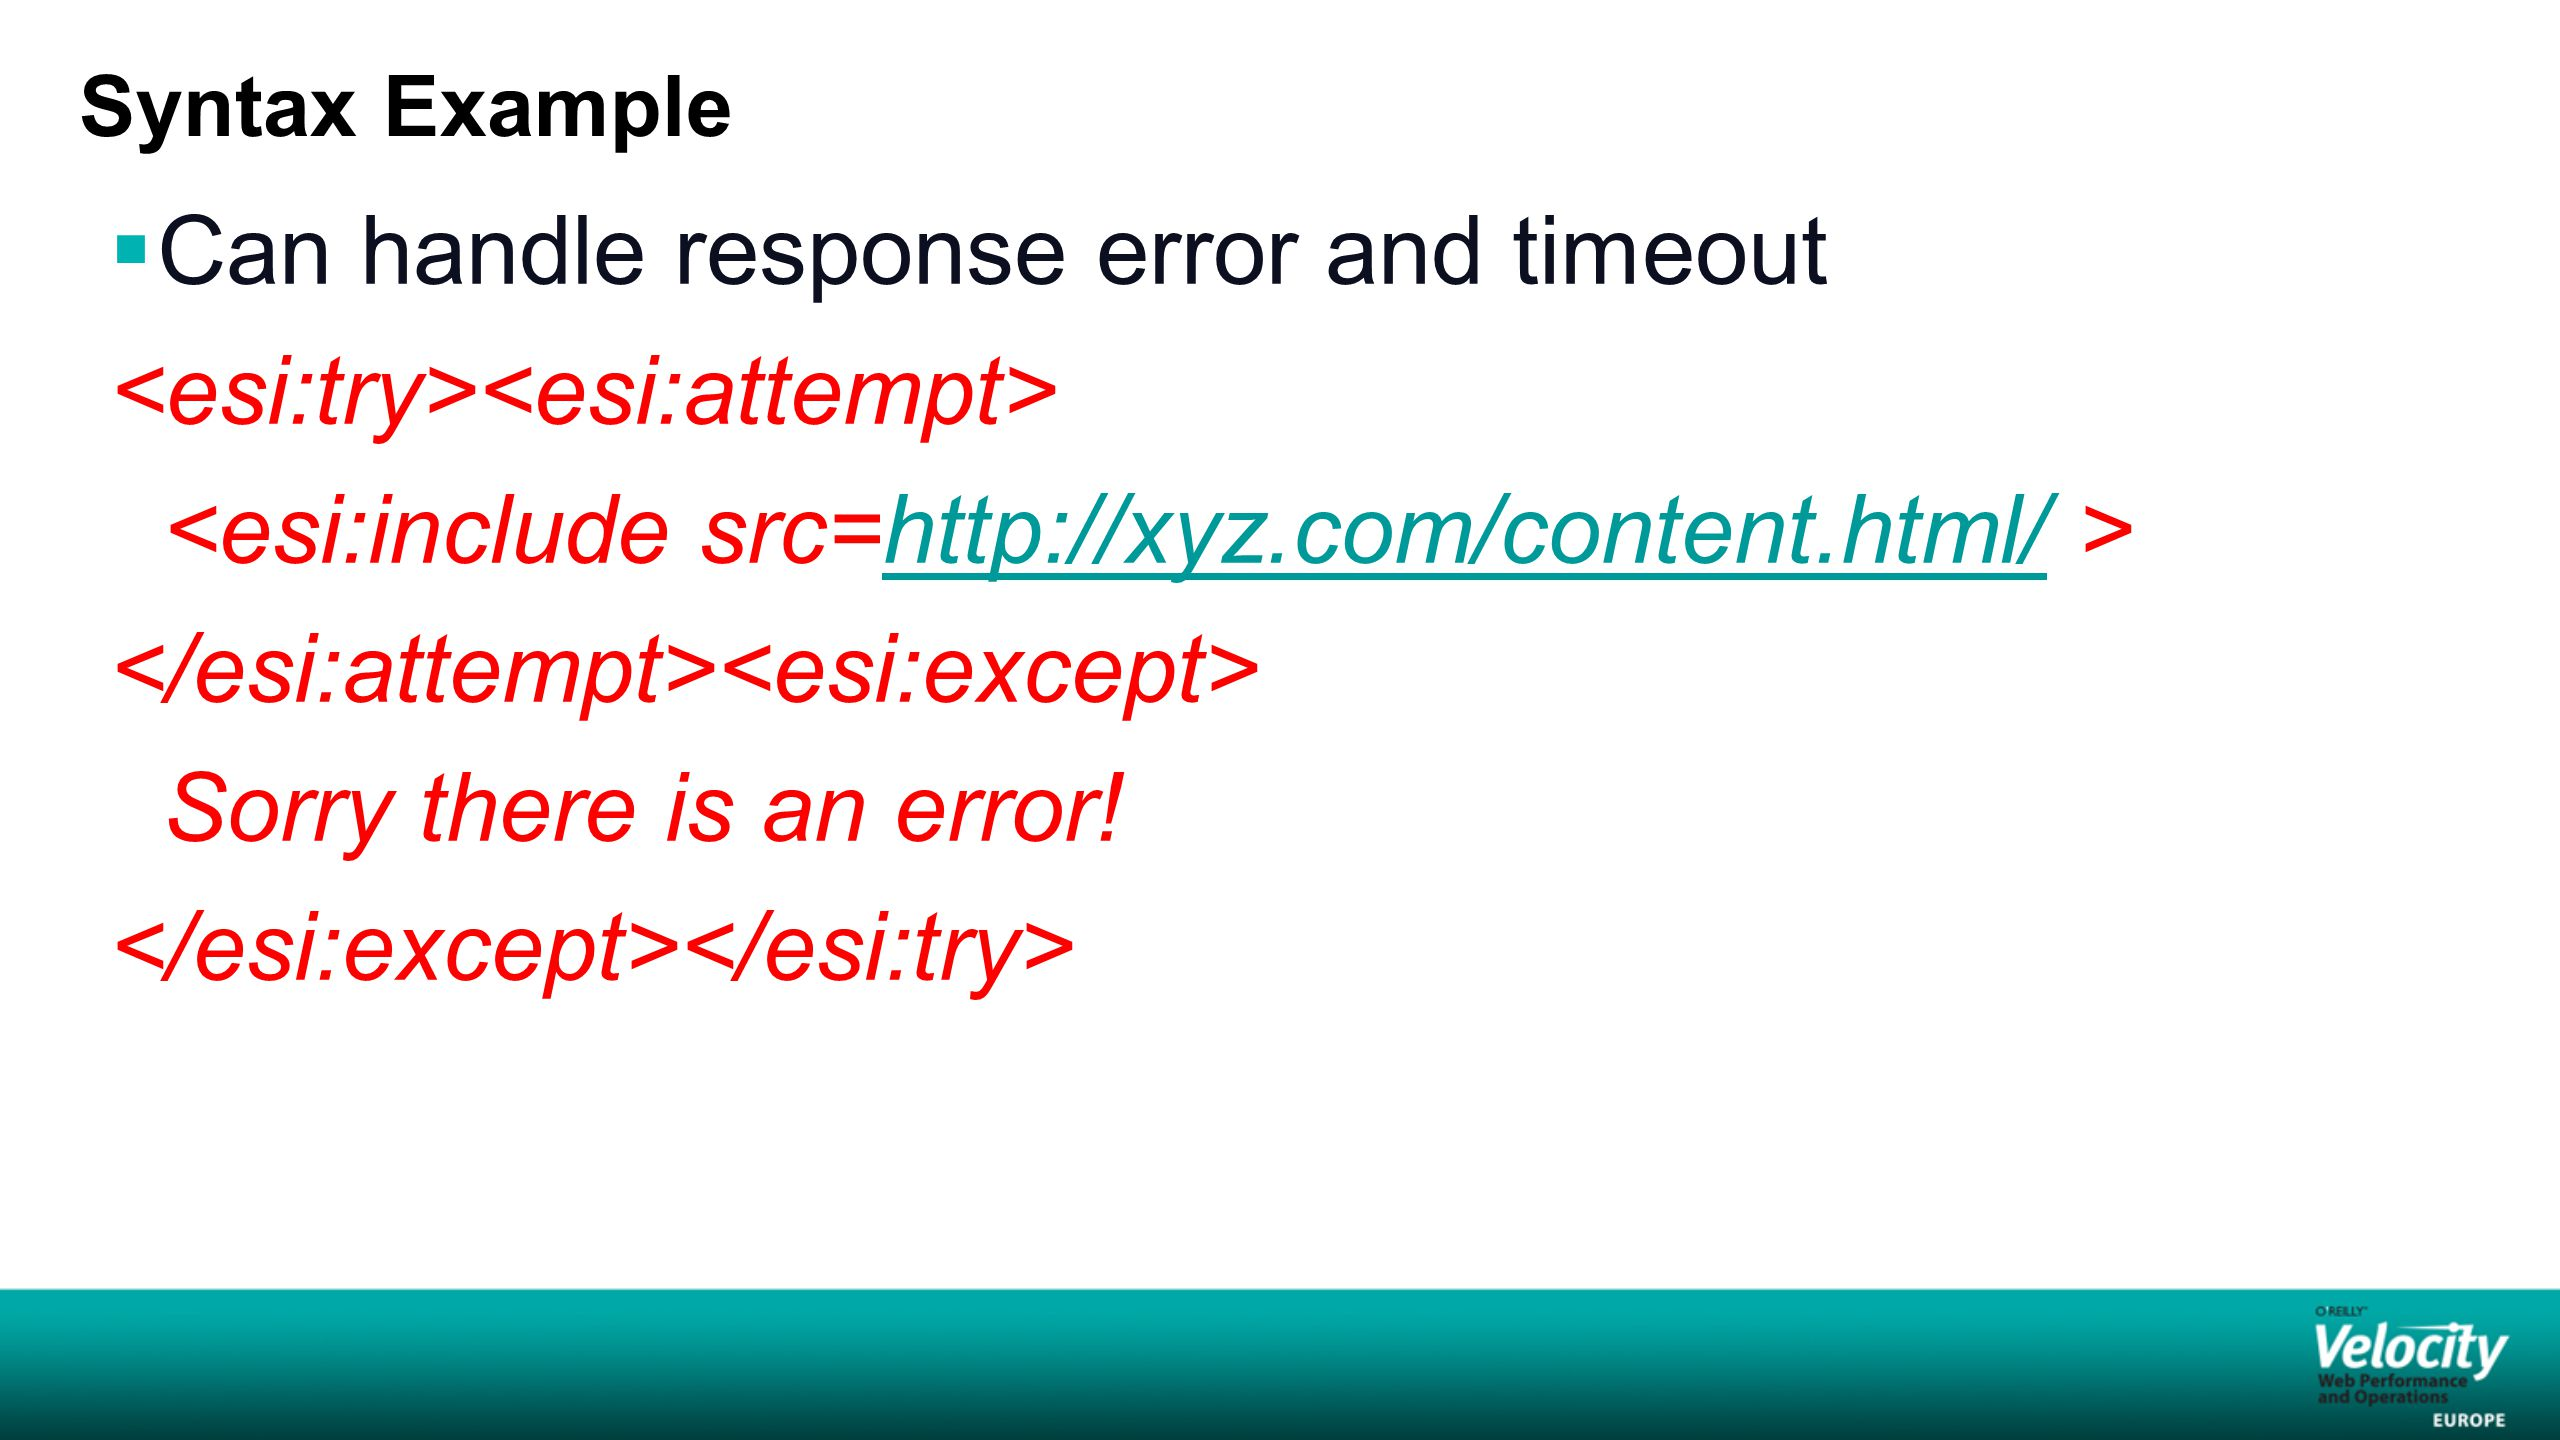 Syntax Example  Can handle response error and timeout http://xyz.com/content.html/ Sorry there is an error!